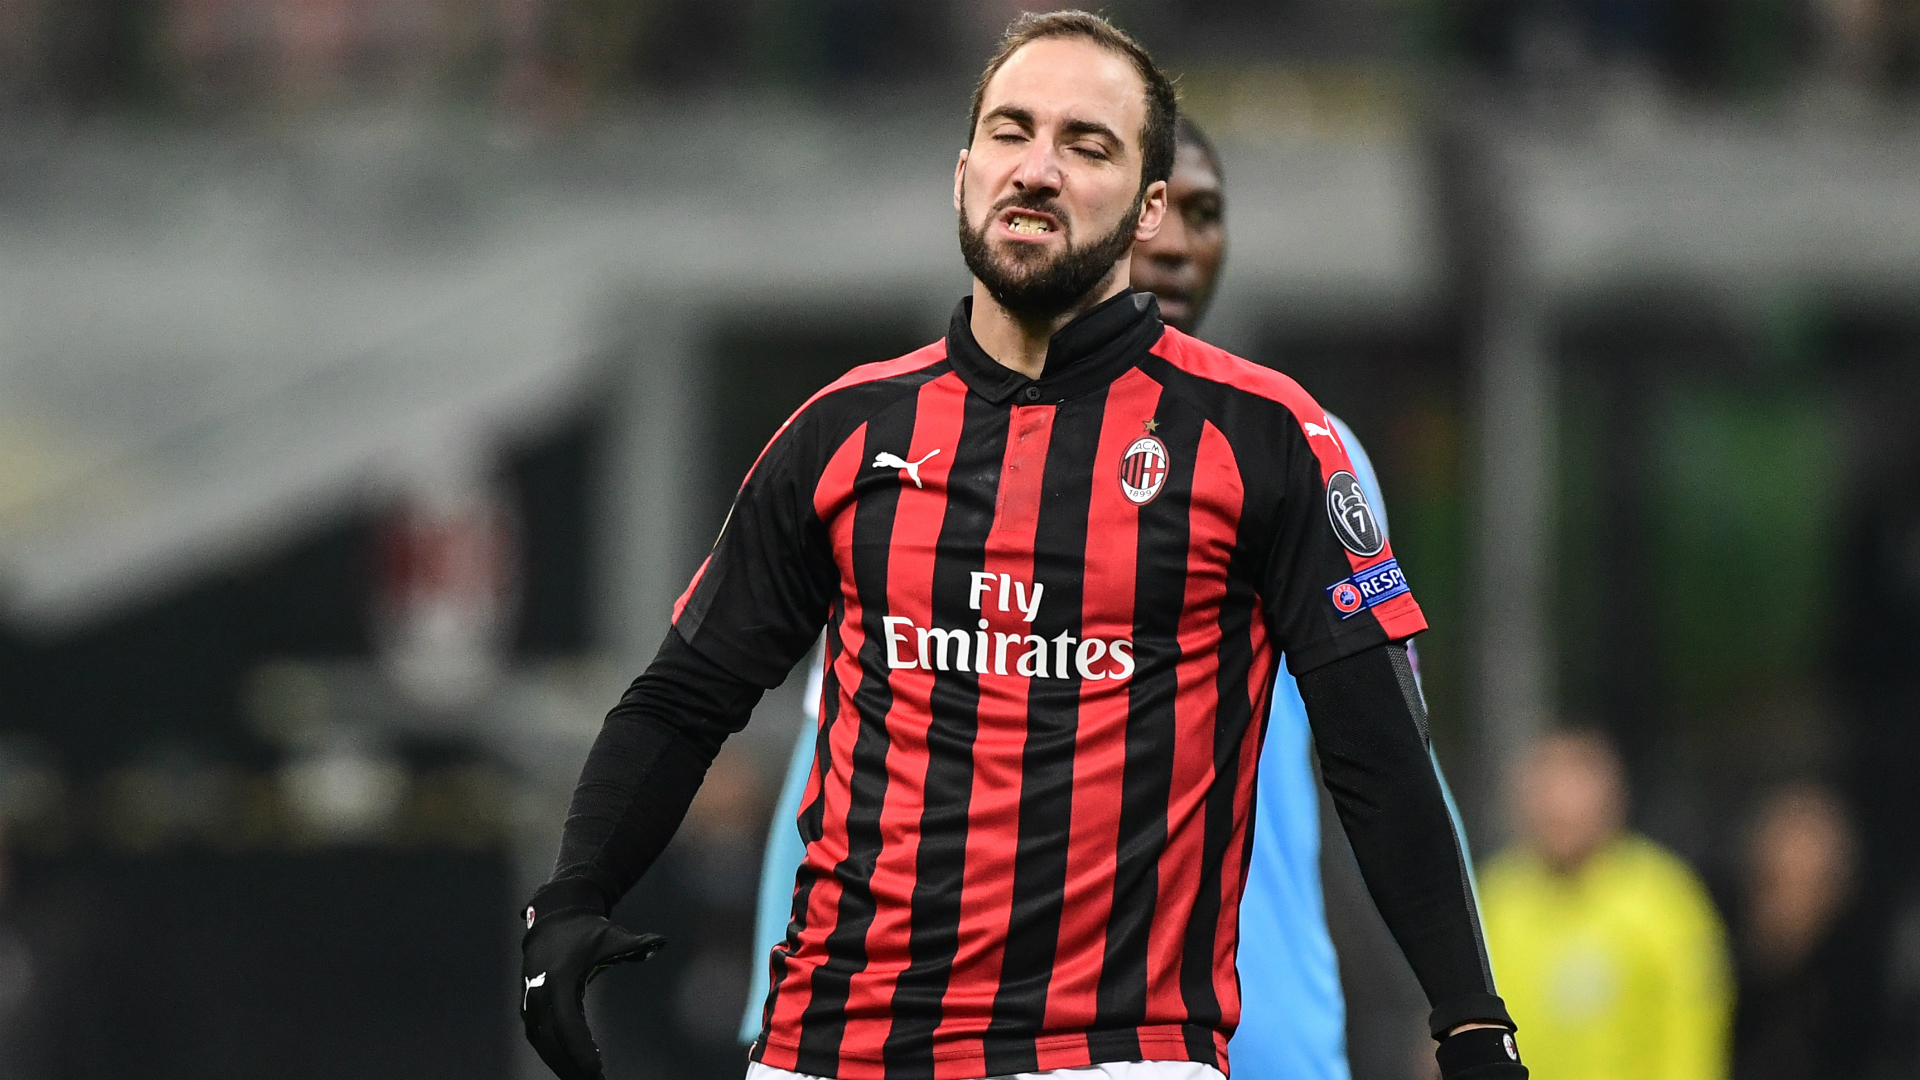 Chelsea agree to sign Gonzalo Higuain as Alvaro Morata heads for Sevilla